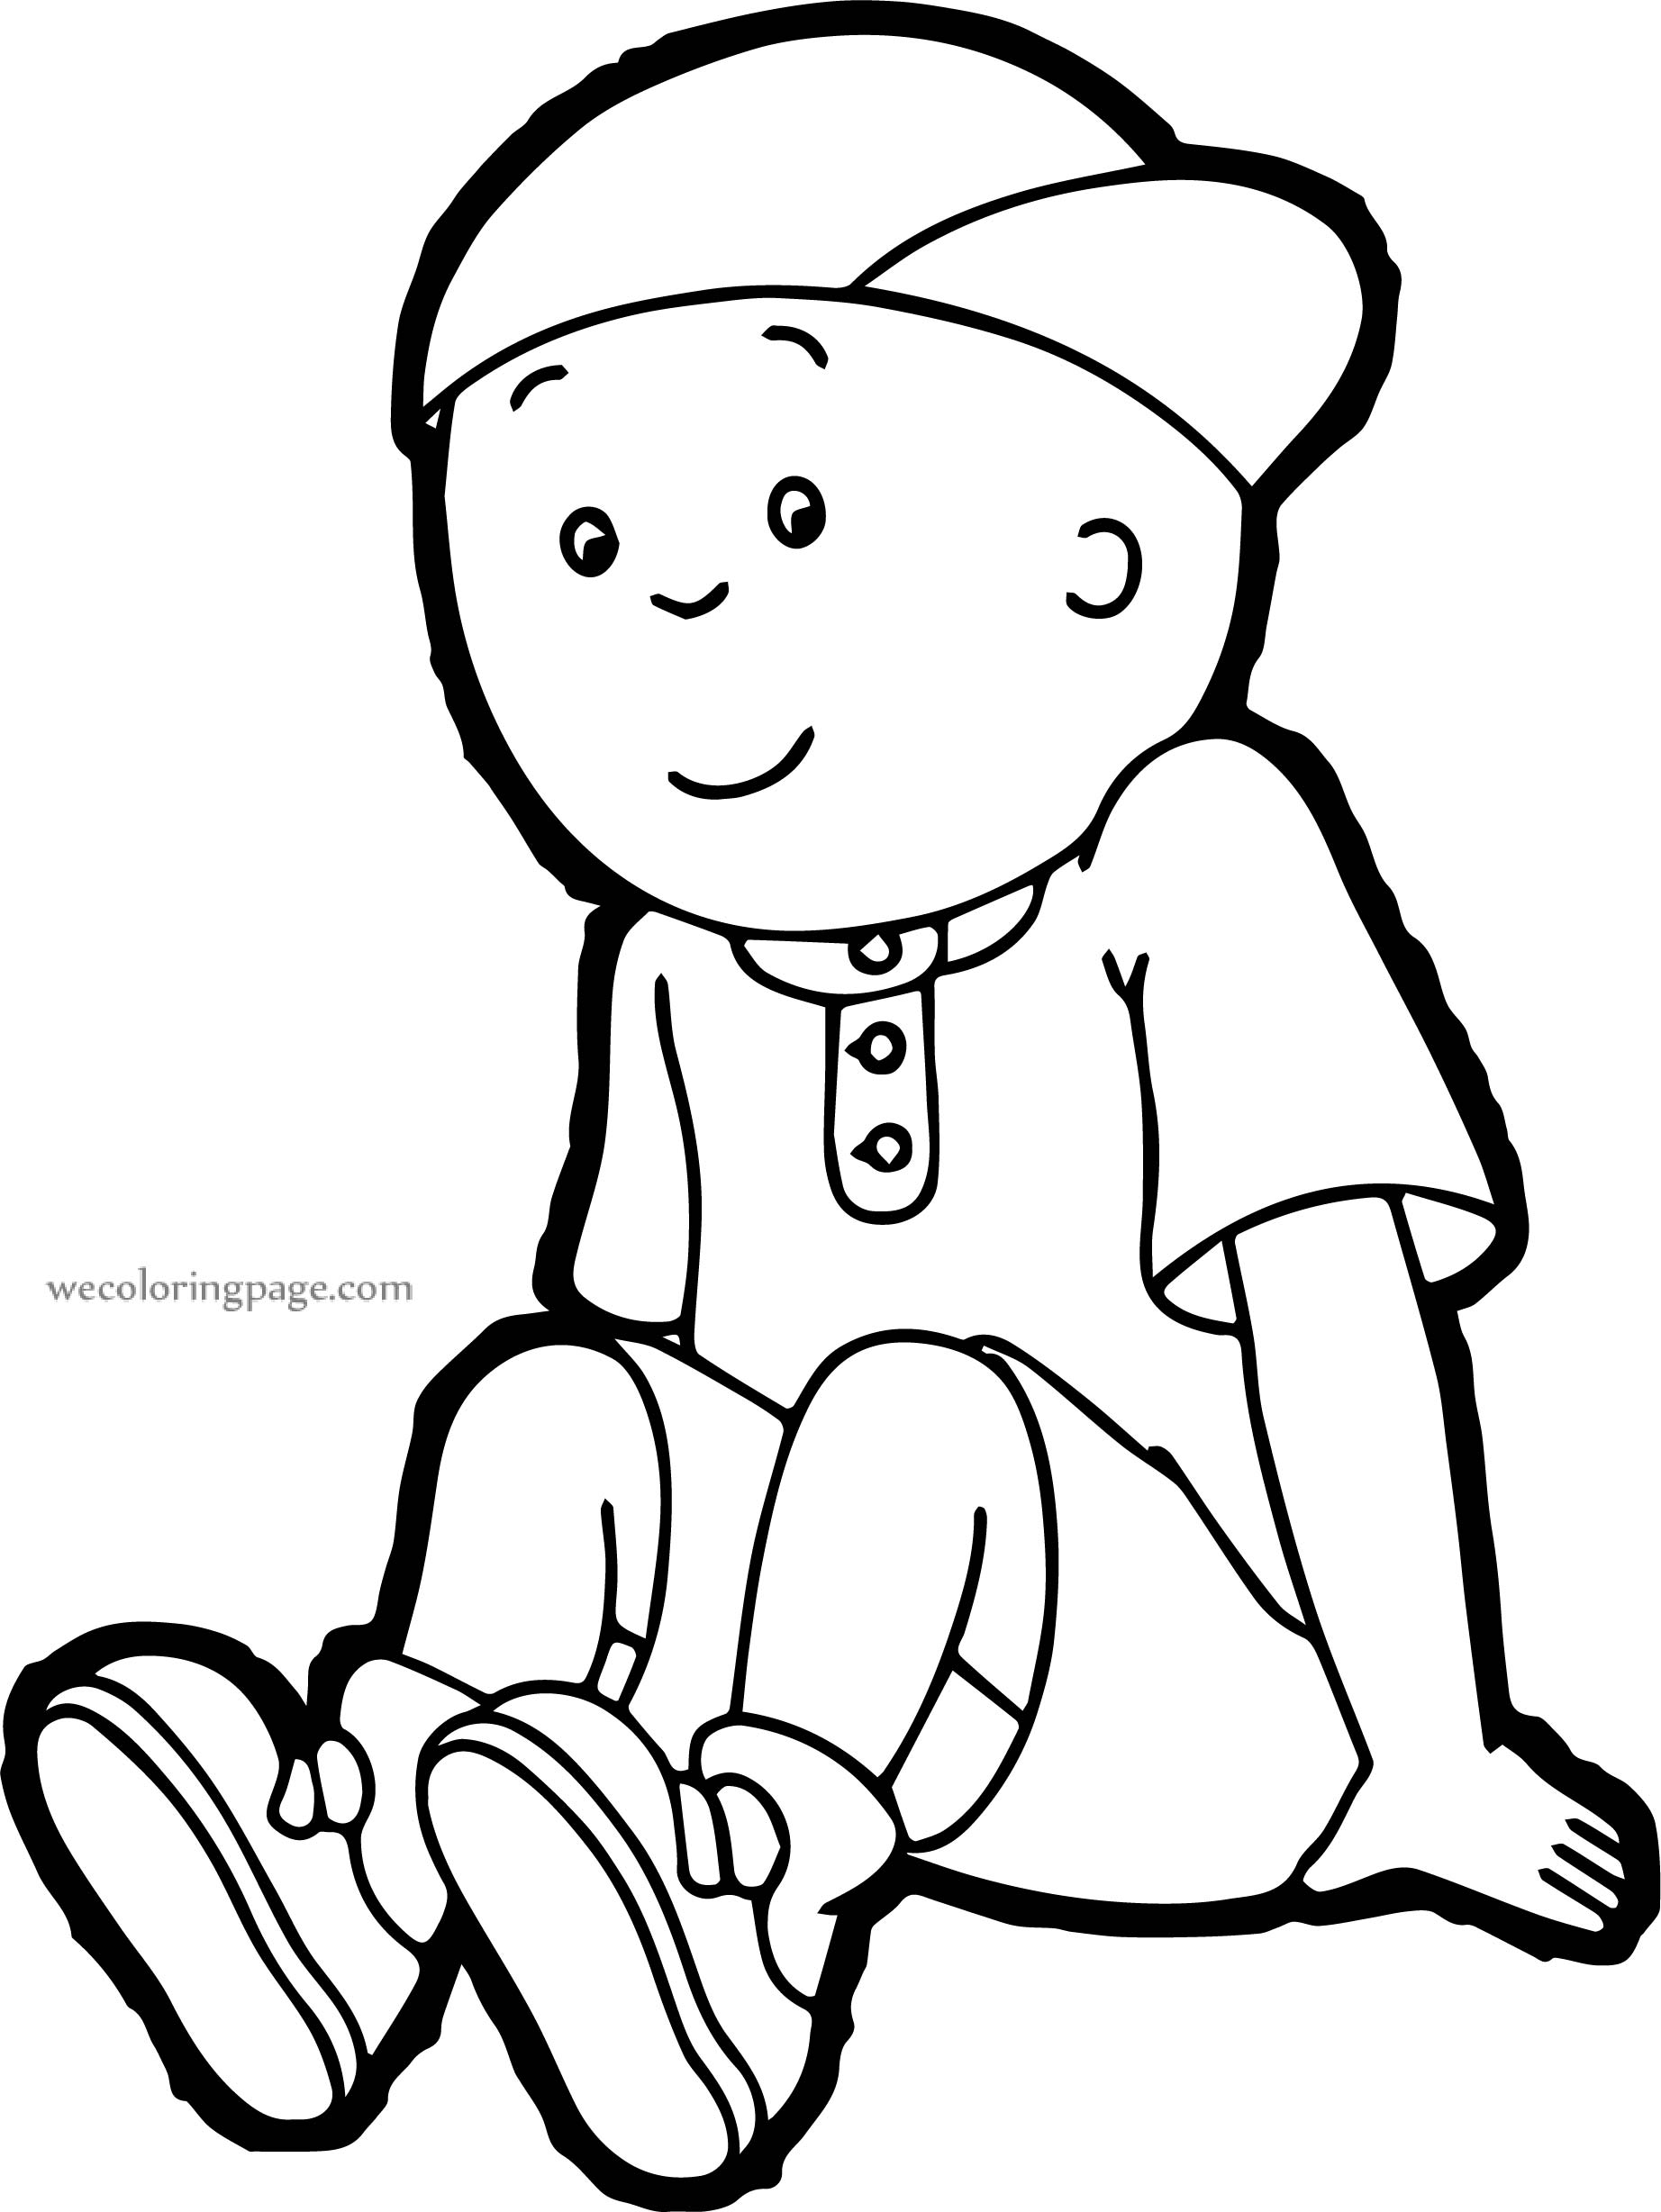 Staying Caillou Coloring Page Wecoloringpage